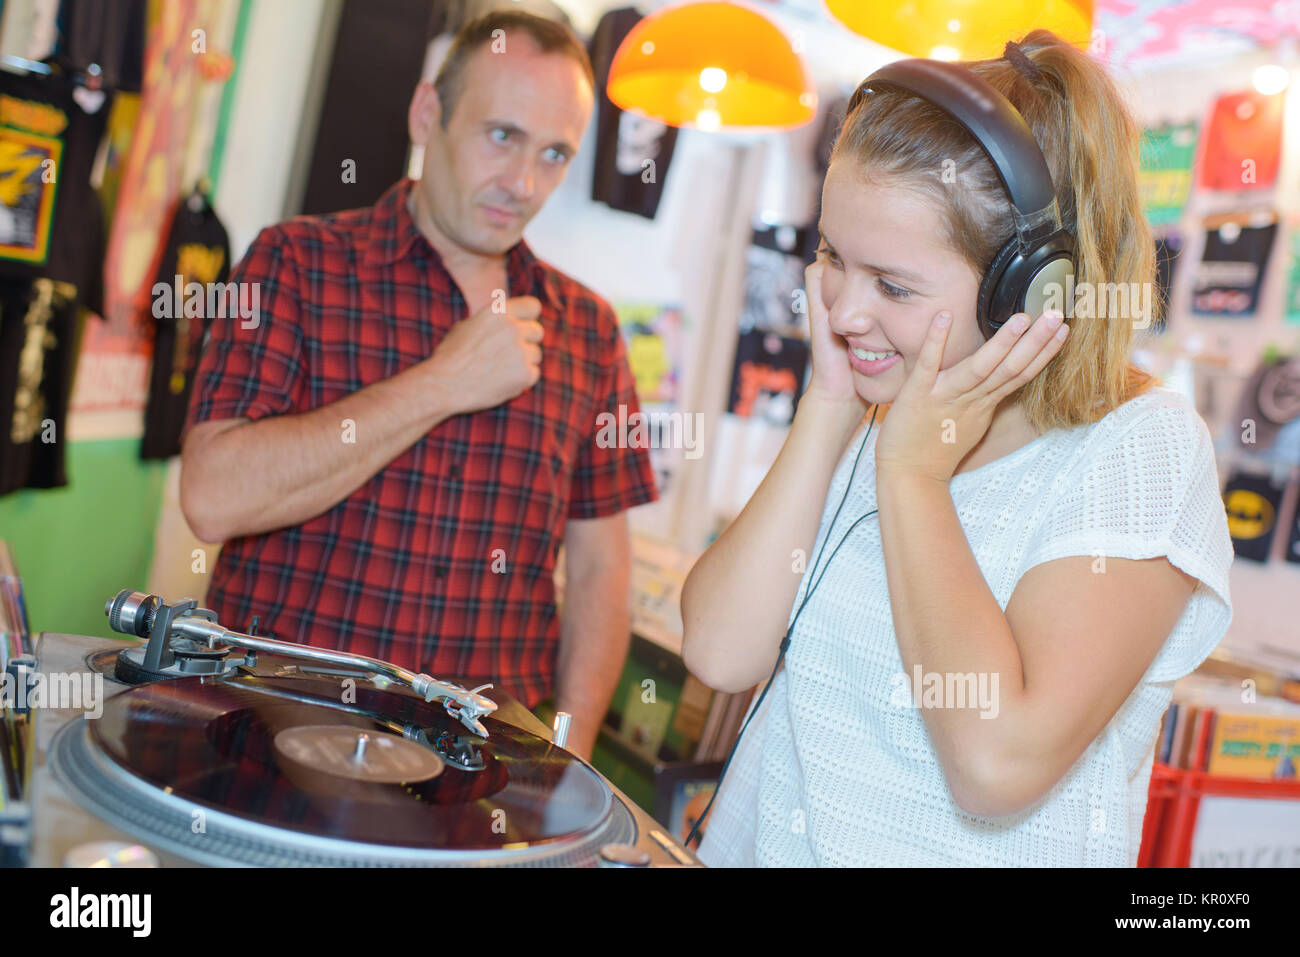 teen listening to the music on the records - Stock Image